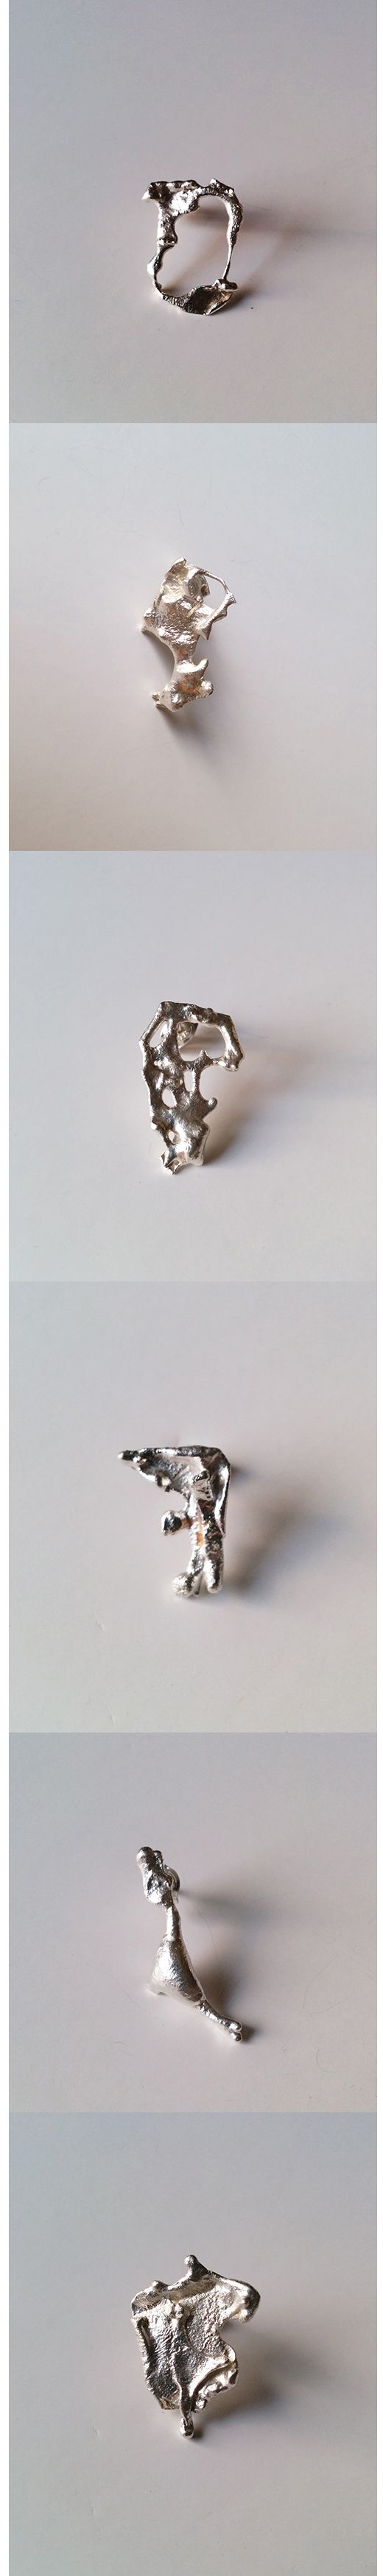 Silver ART earrings hand-crafted by Riot Shapes http://riotshapes.bigcartel.com/